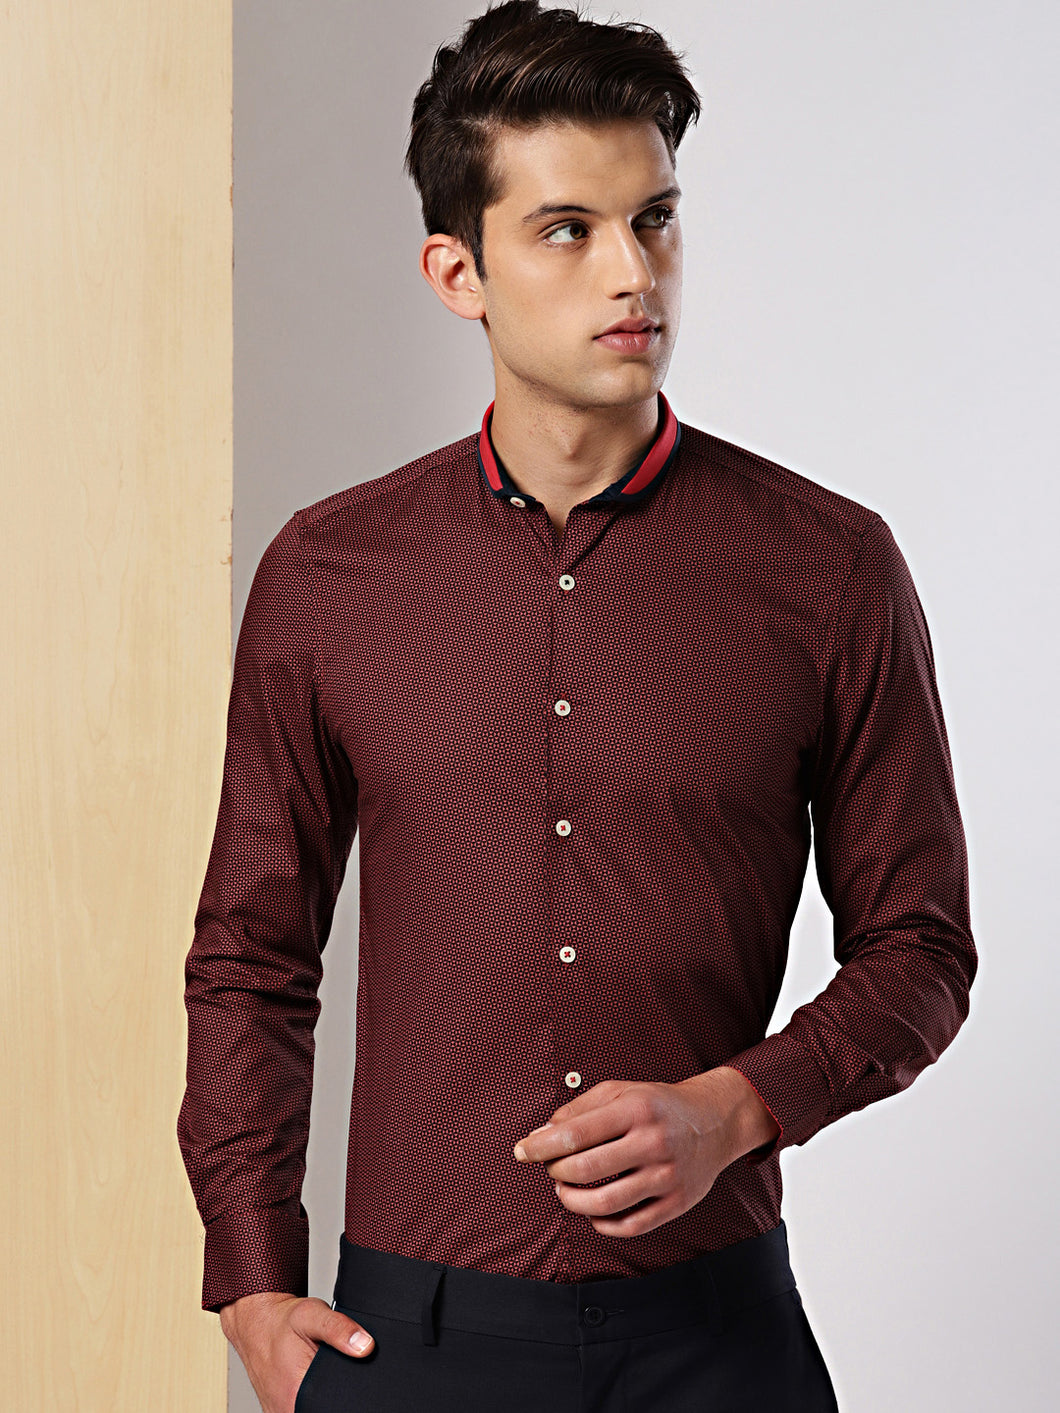 Men Black & Red Slim Fit Micro Printed Formal Shirt